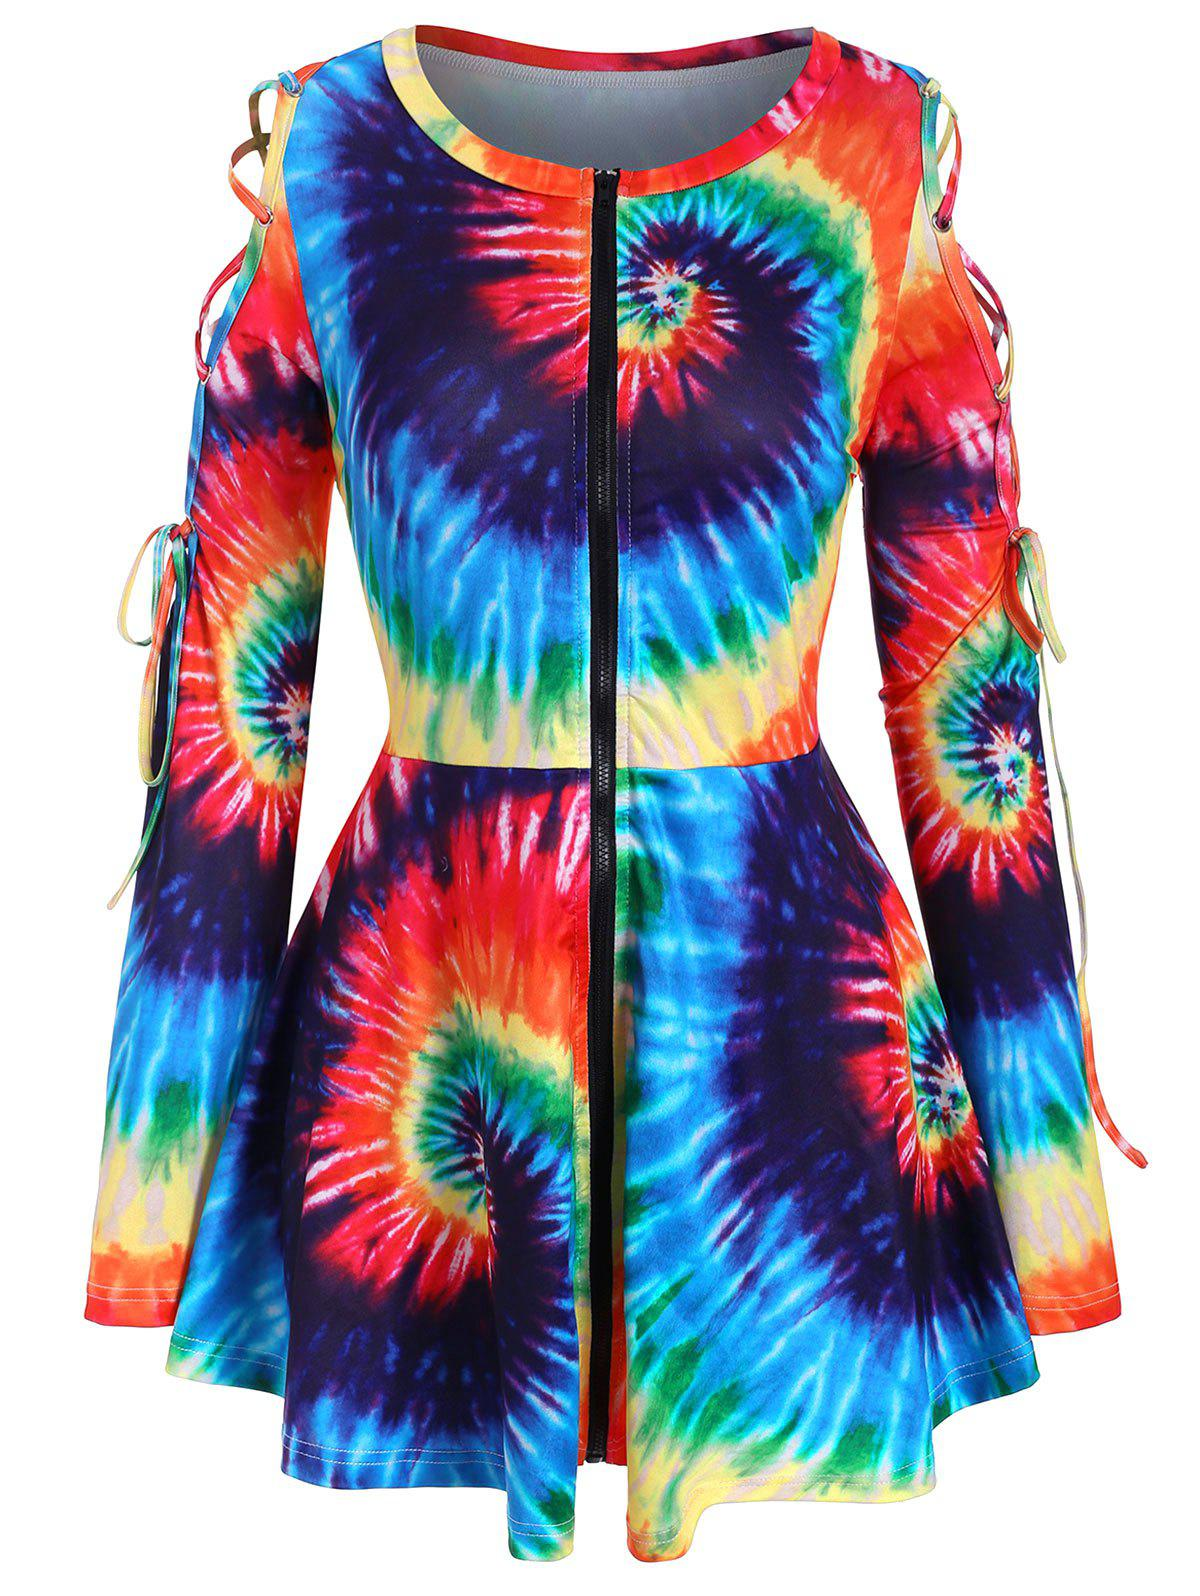 Rainbow Tie Dye Lace Up Zip Front Plus Size Top - multicolor 4X